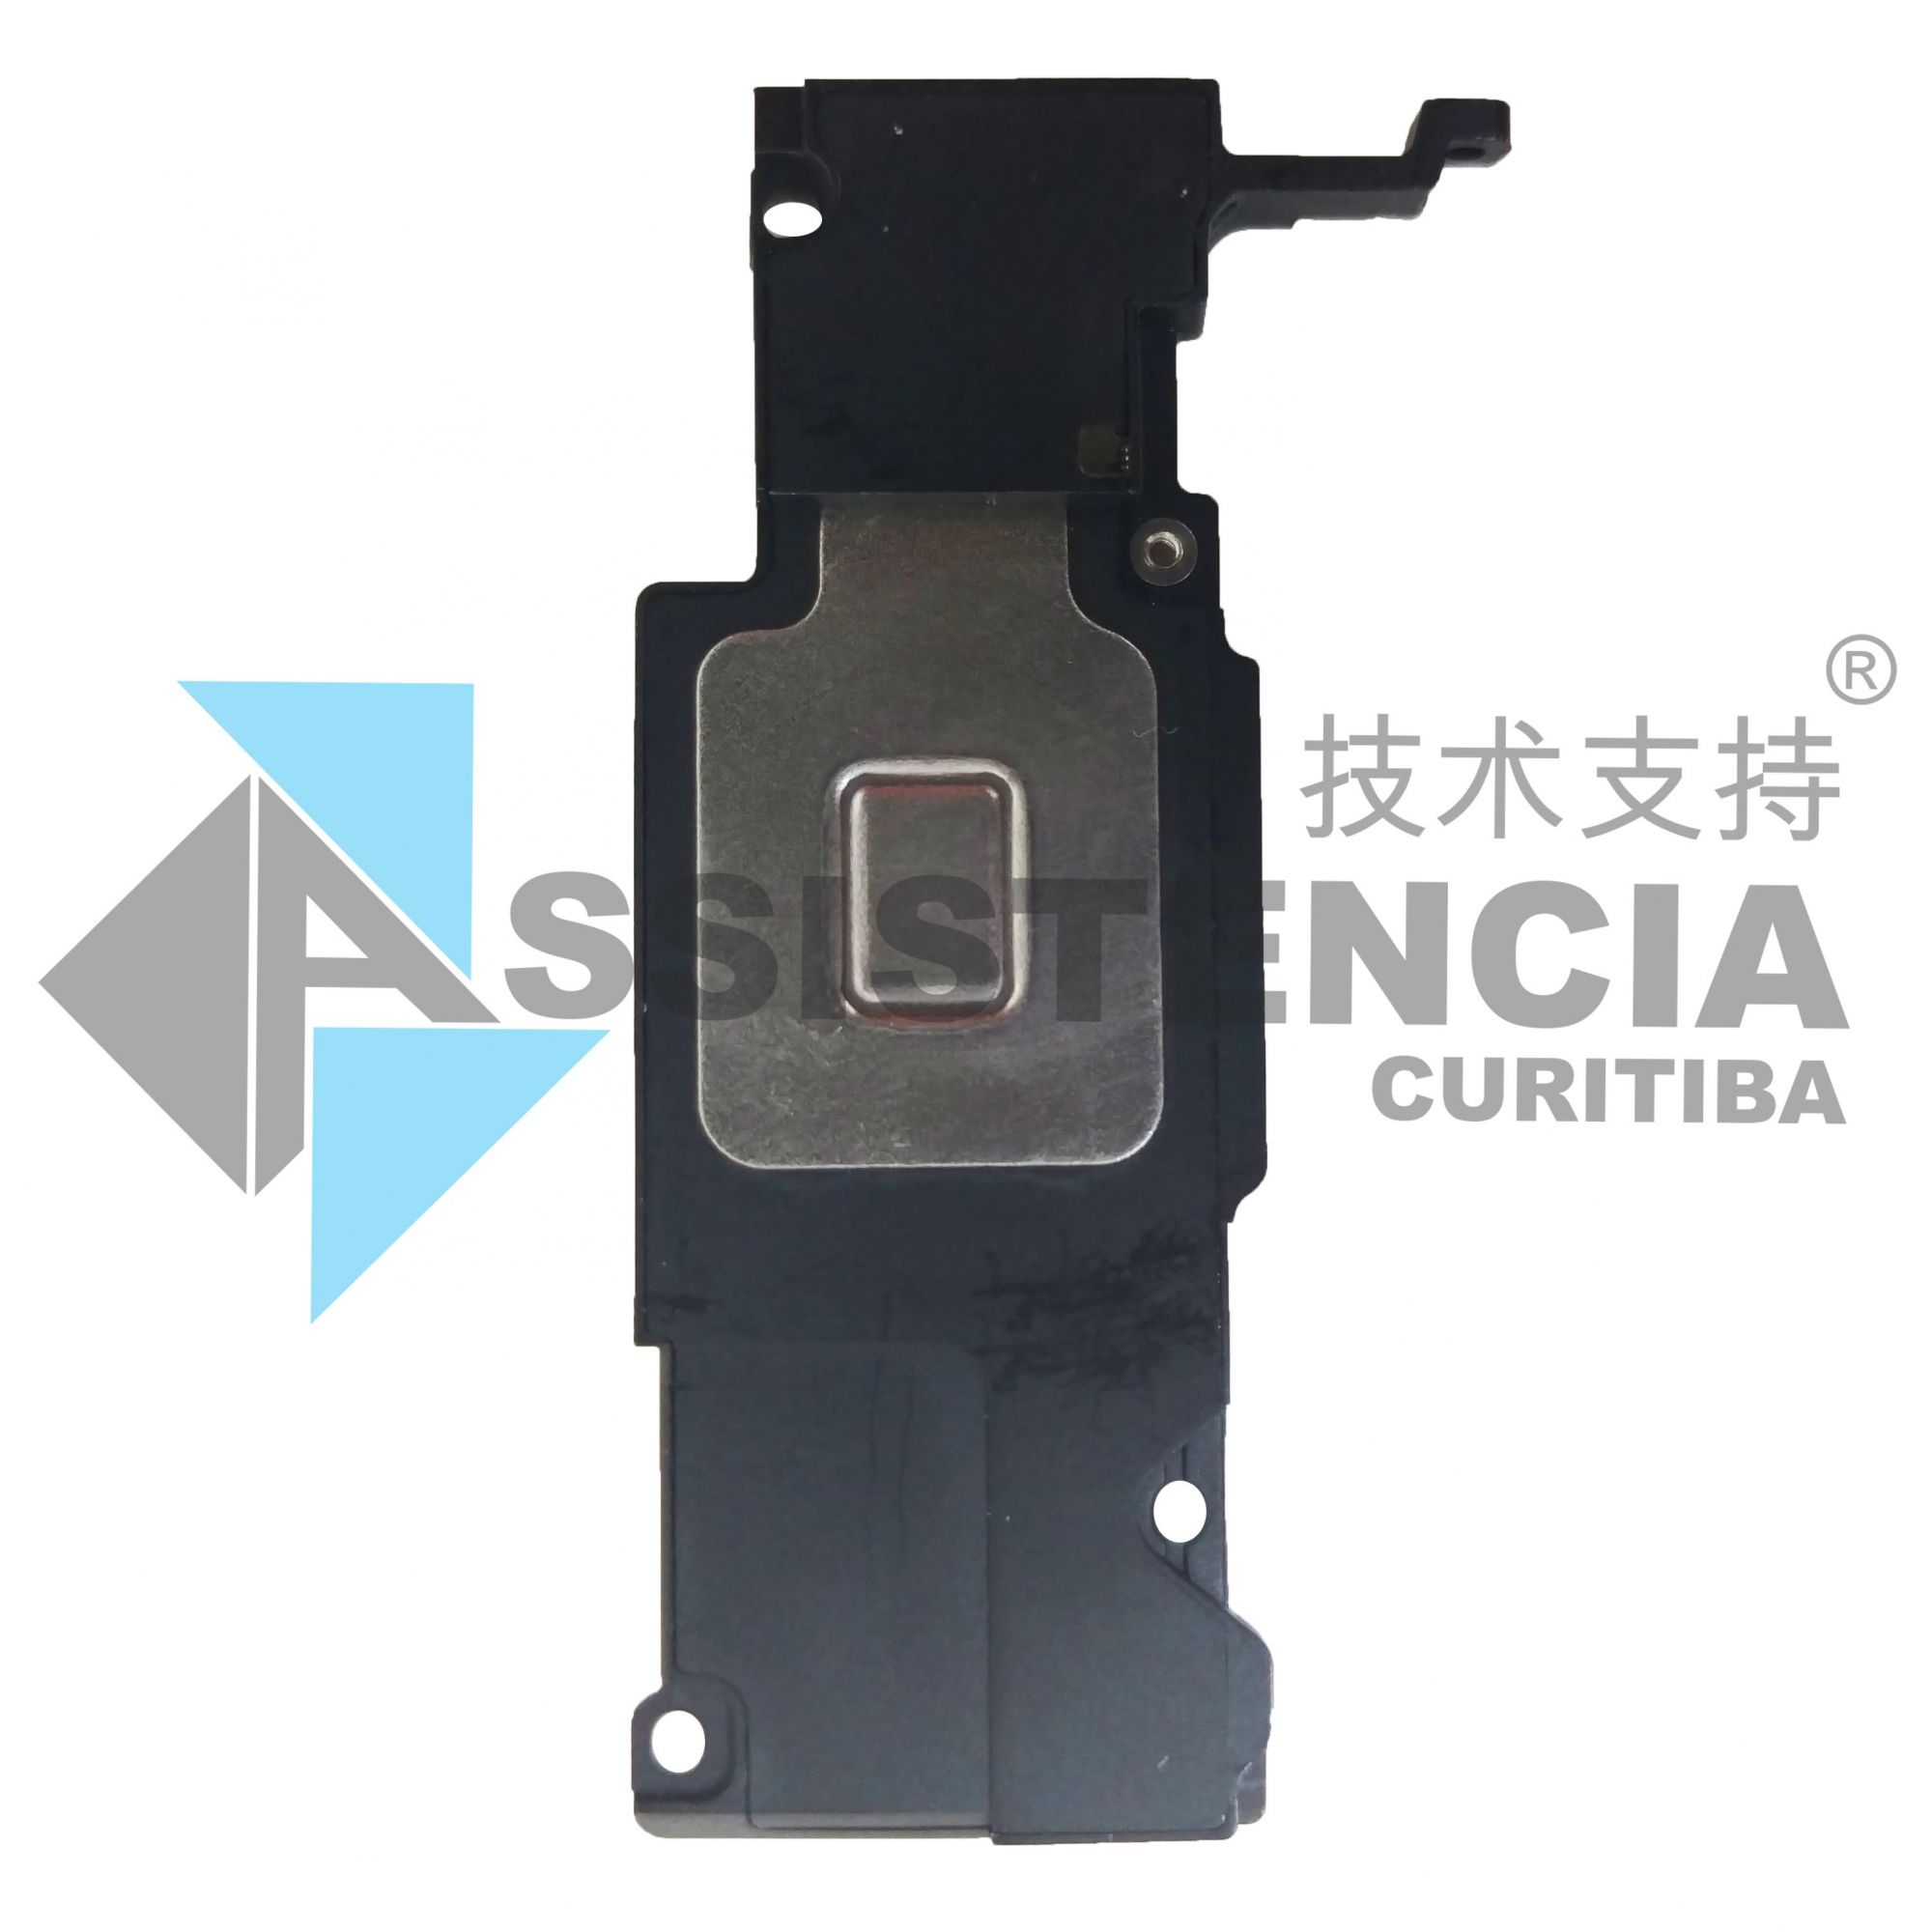 FLEX CAMPAINHA ALTO FALANTE CELULAR APPLE IPHONE 6S PLUS